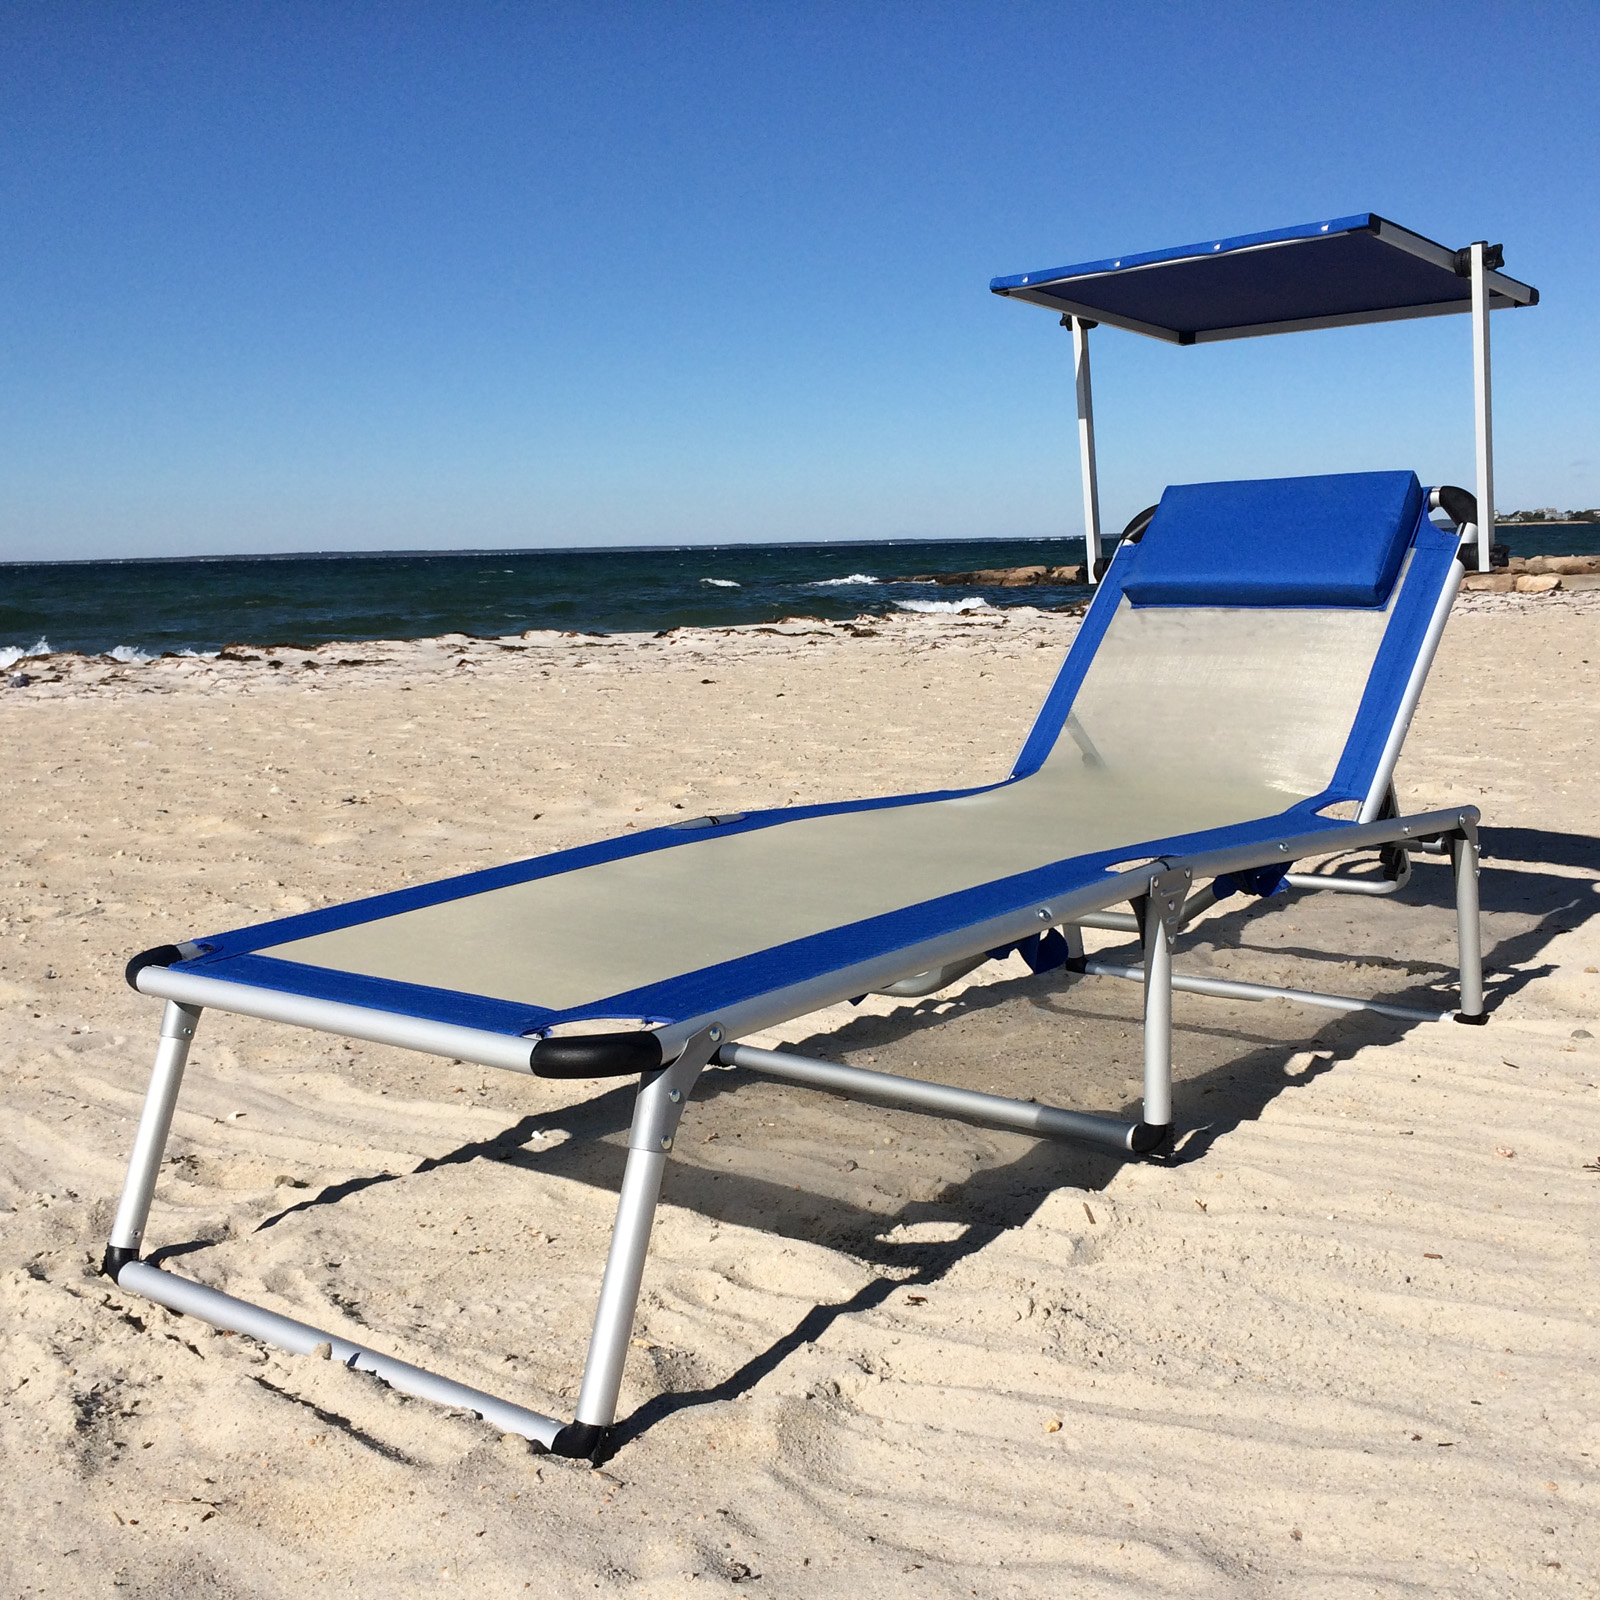 cool lounger beach chaise lounge do not use at hayneedle